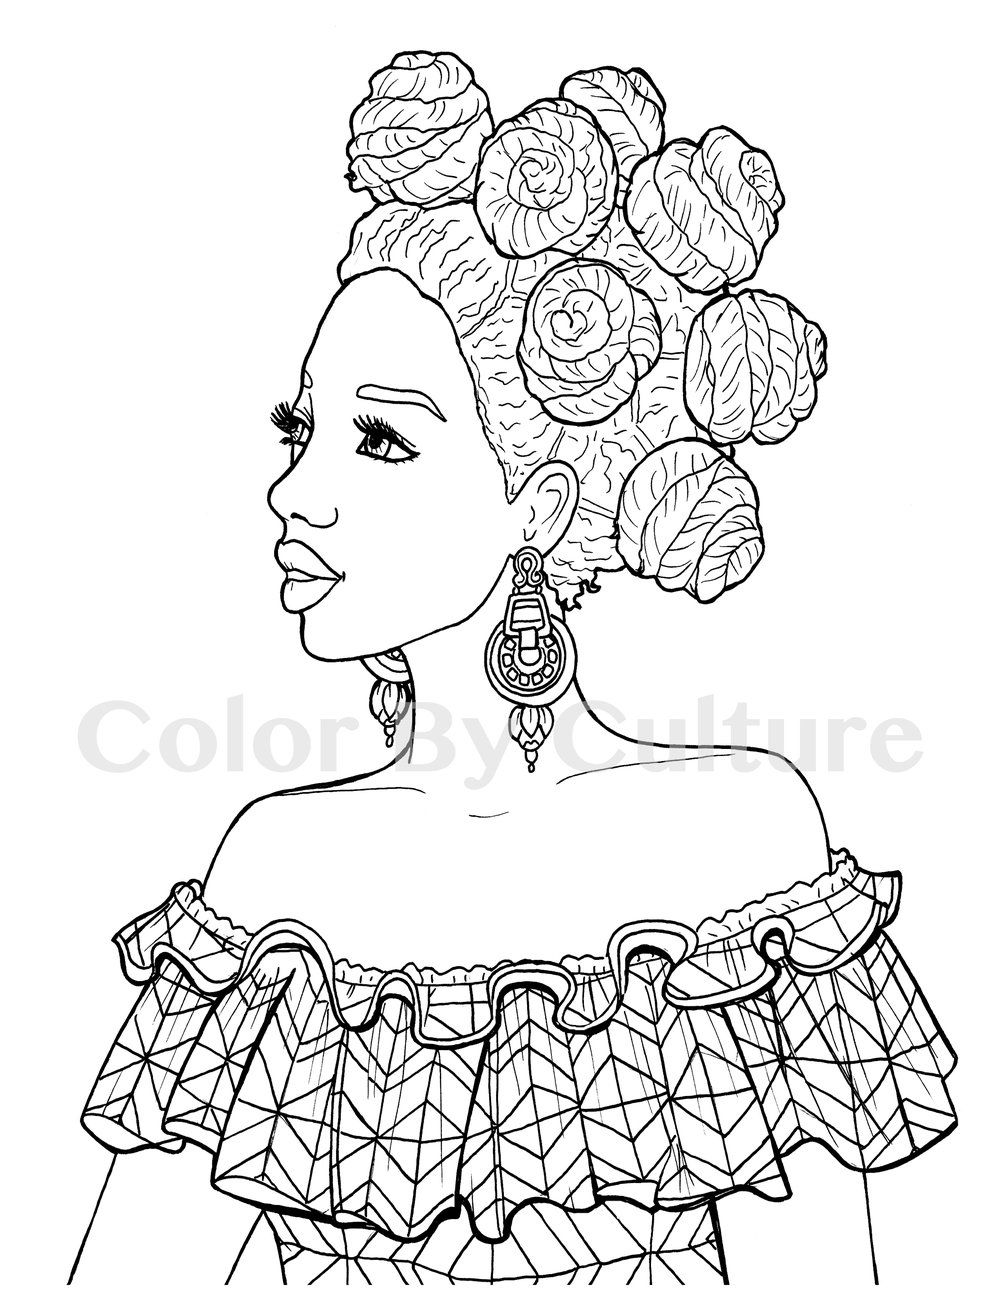 Printable coloring book african fashions adult colouring